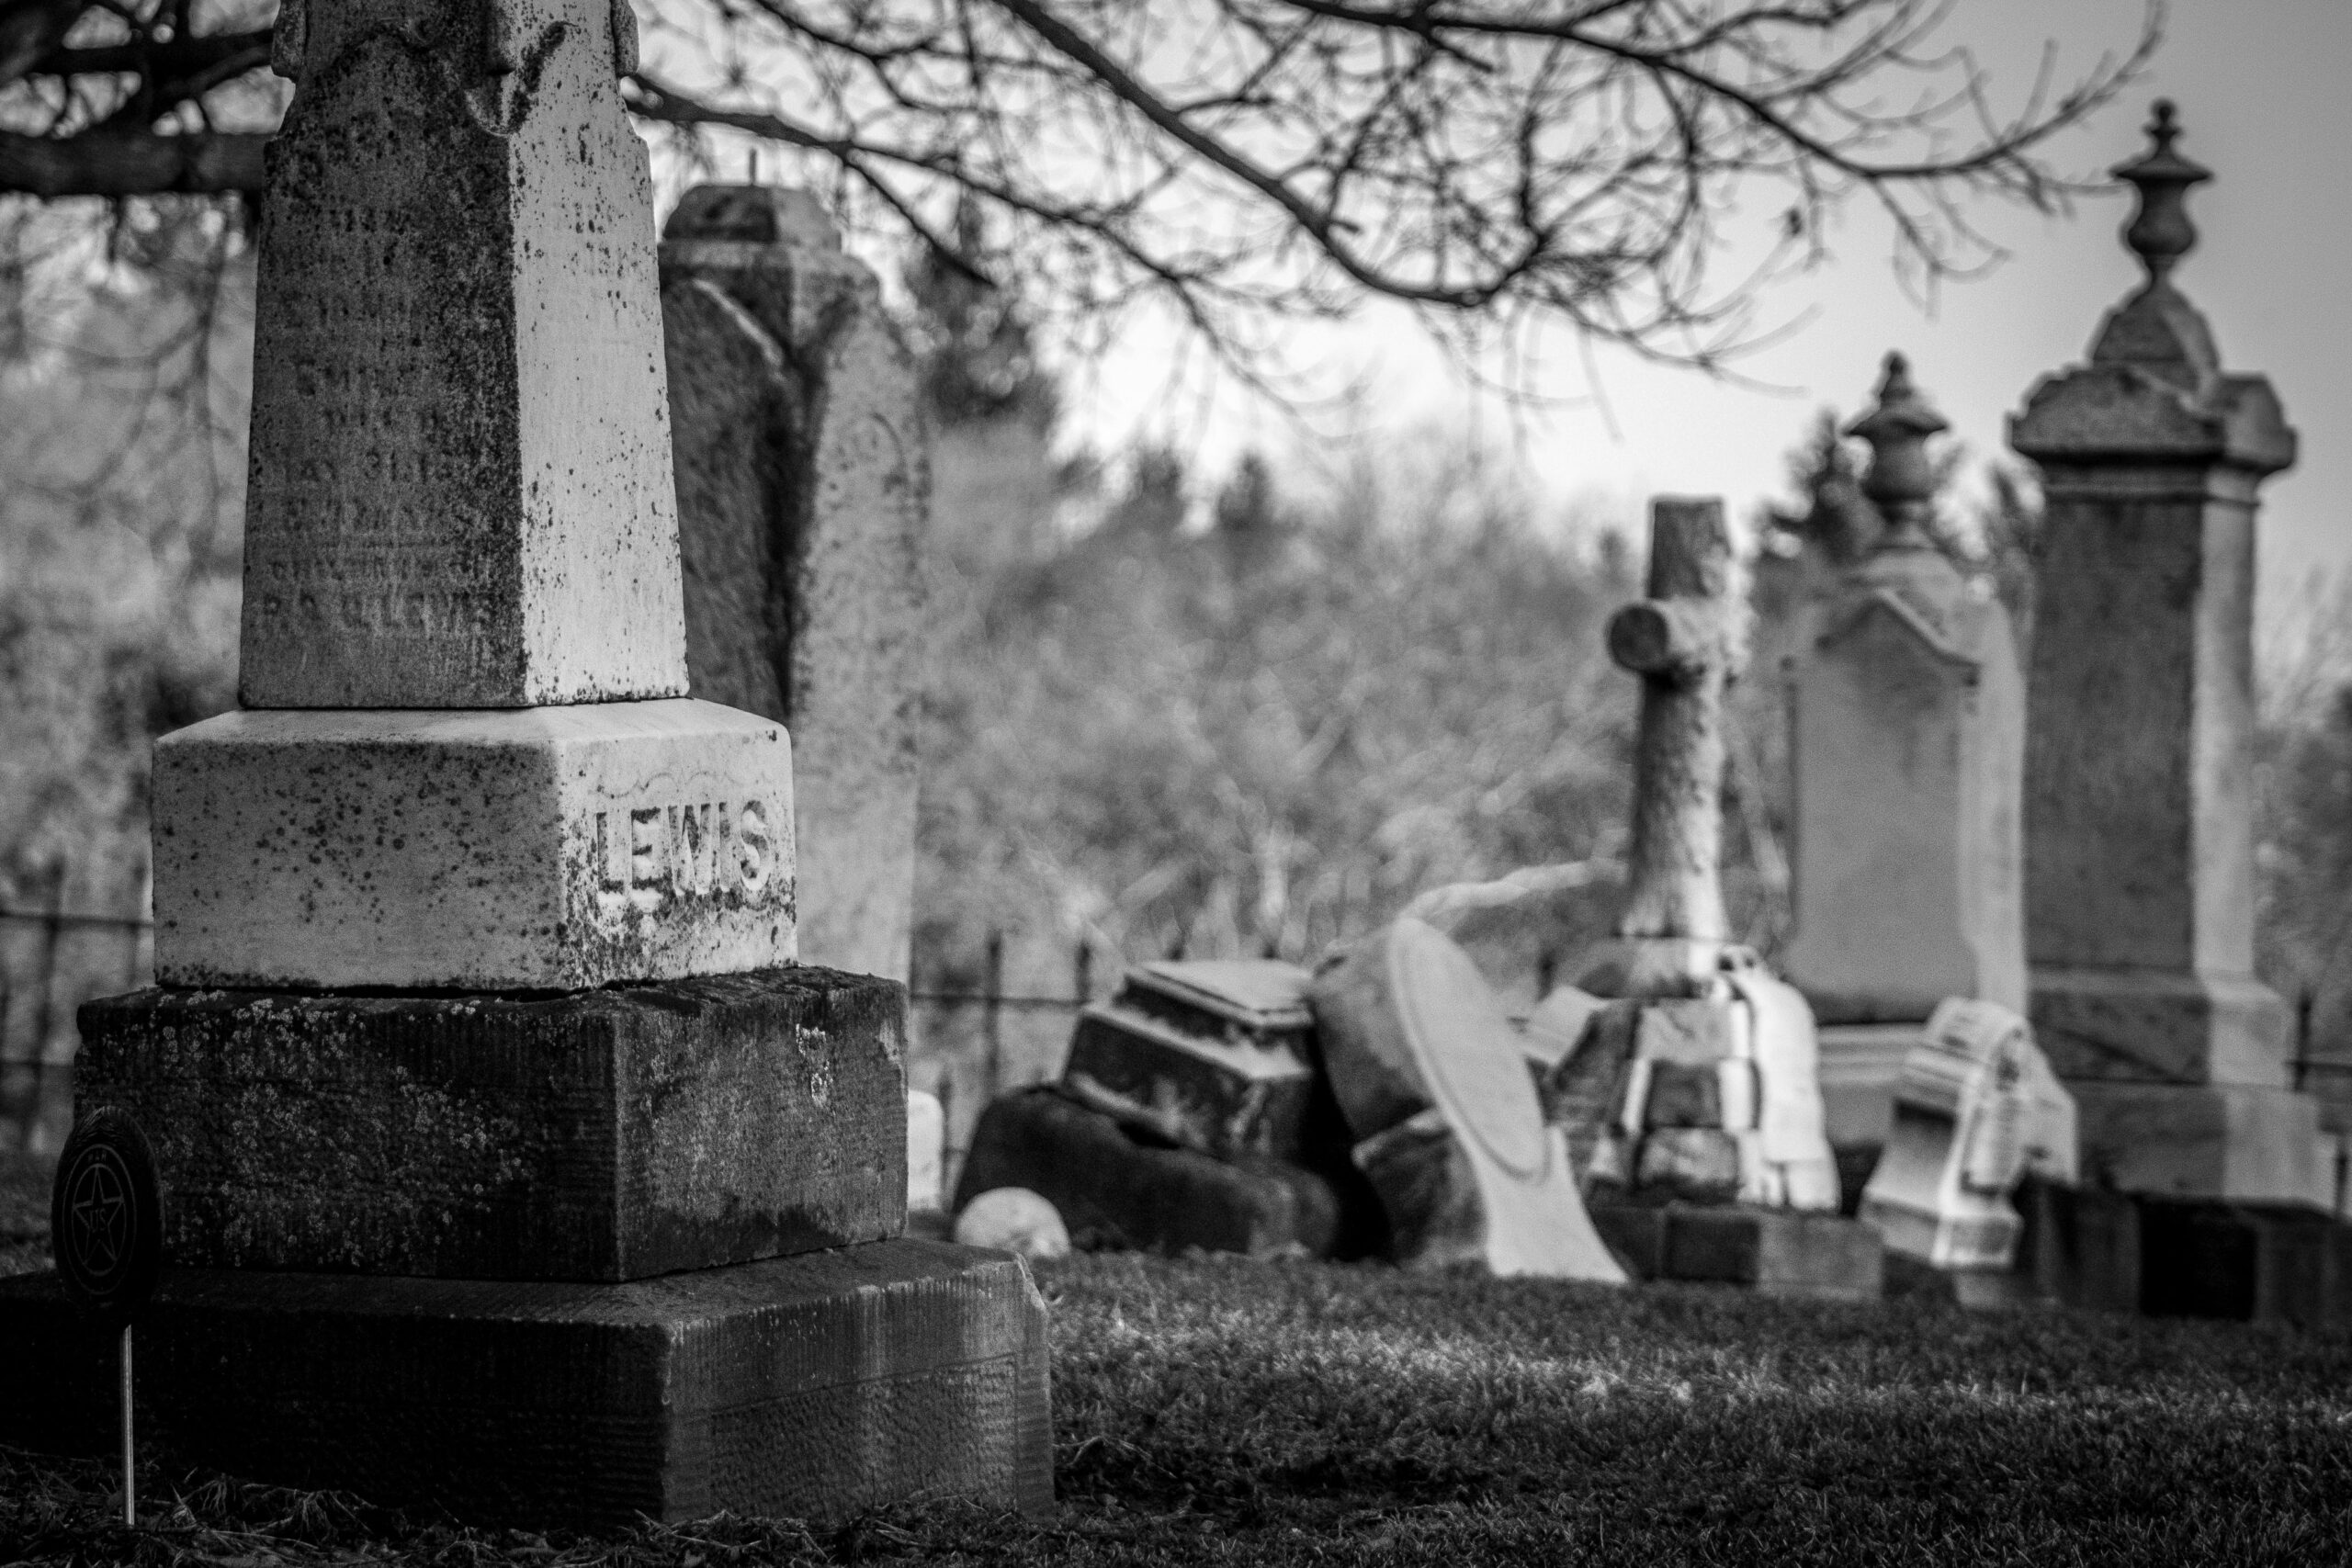 By Your Grave, by Ioannis Assiotis